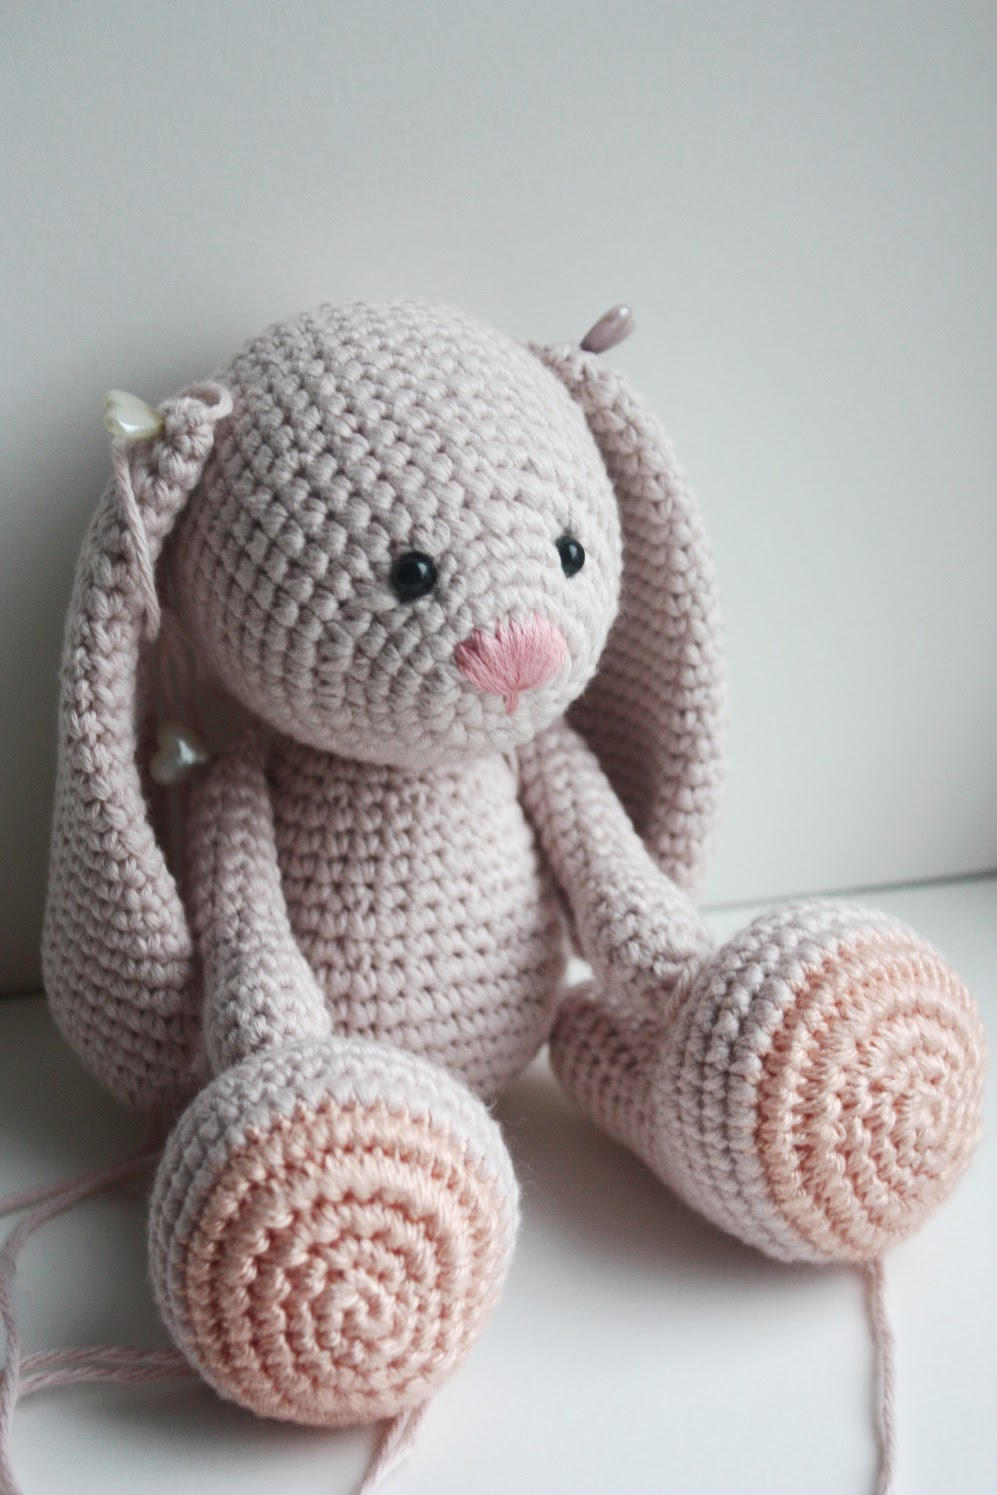 Free Crochet Pattern For A Rabbit : HAPPYAMIGURUMI: New design in process: Little Amigurumi Bunny